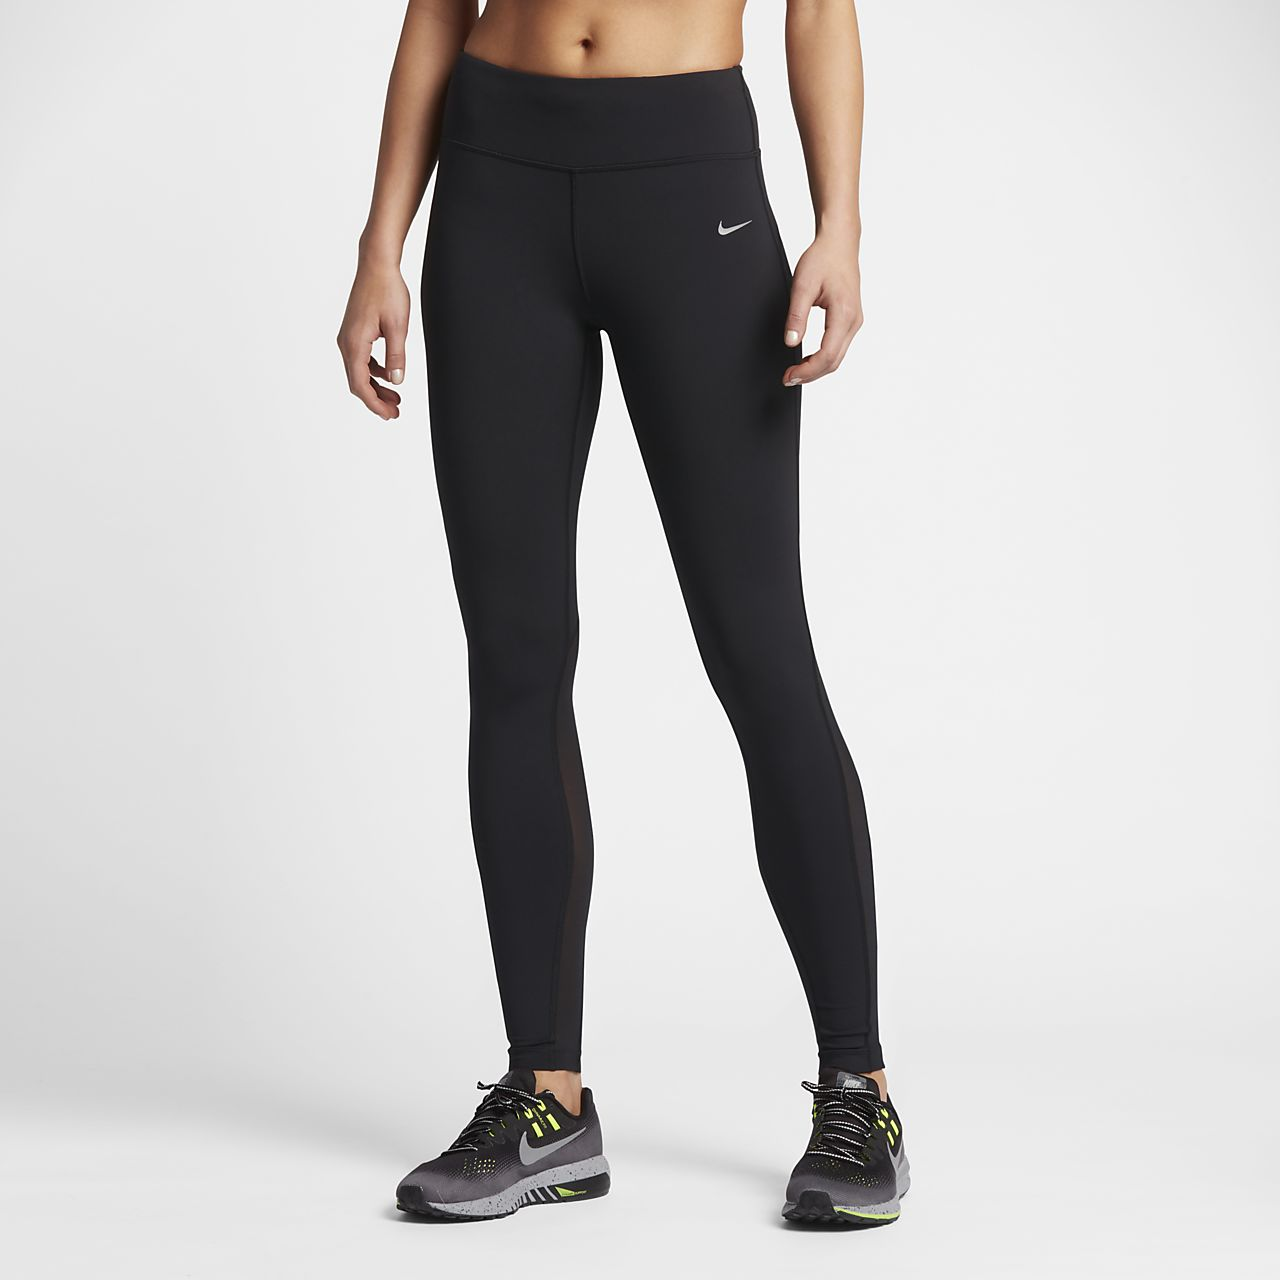 ... Nike Power Epic Lux Women's Running Tights